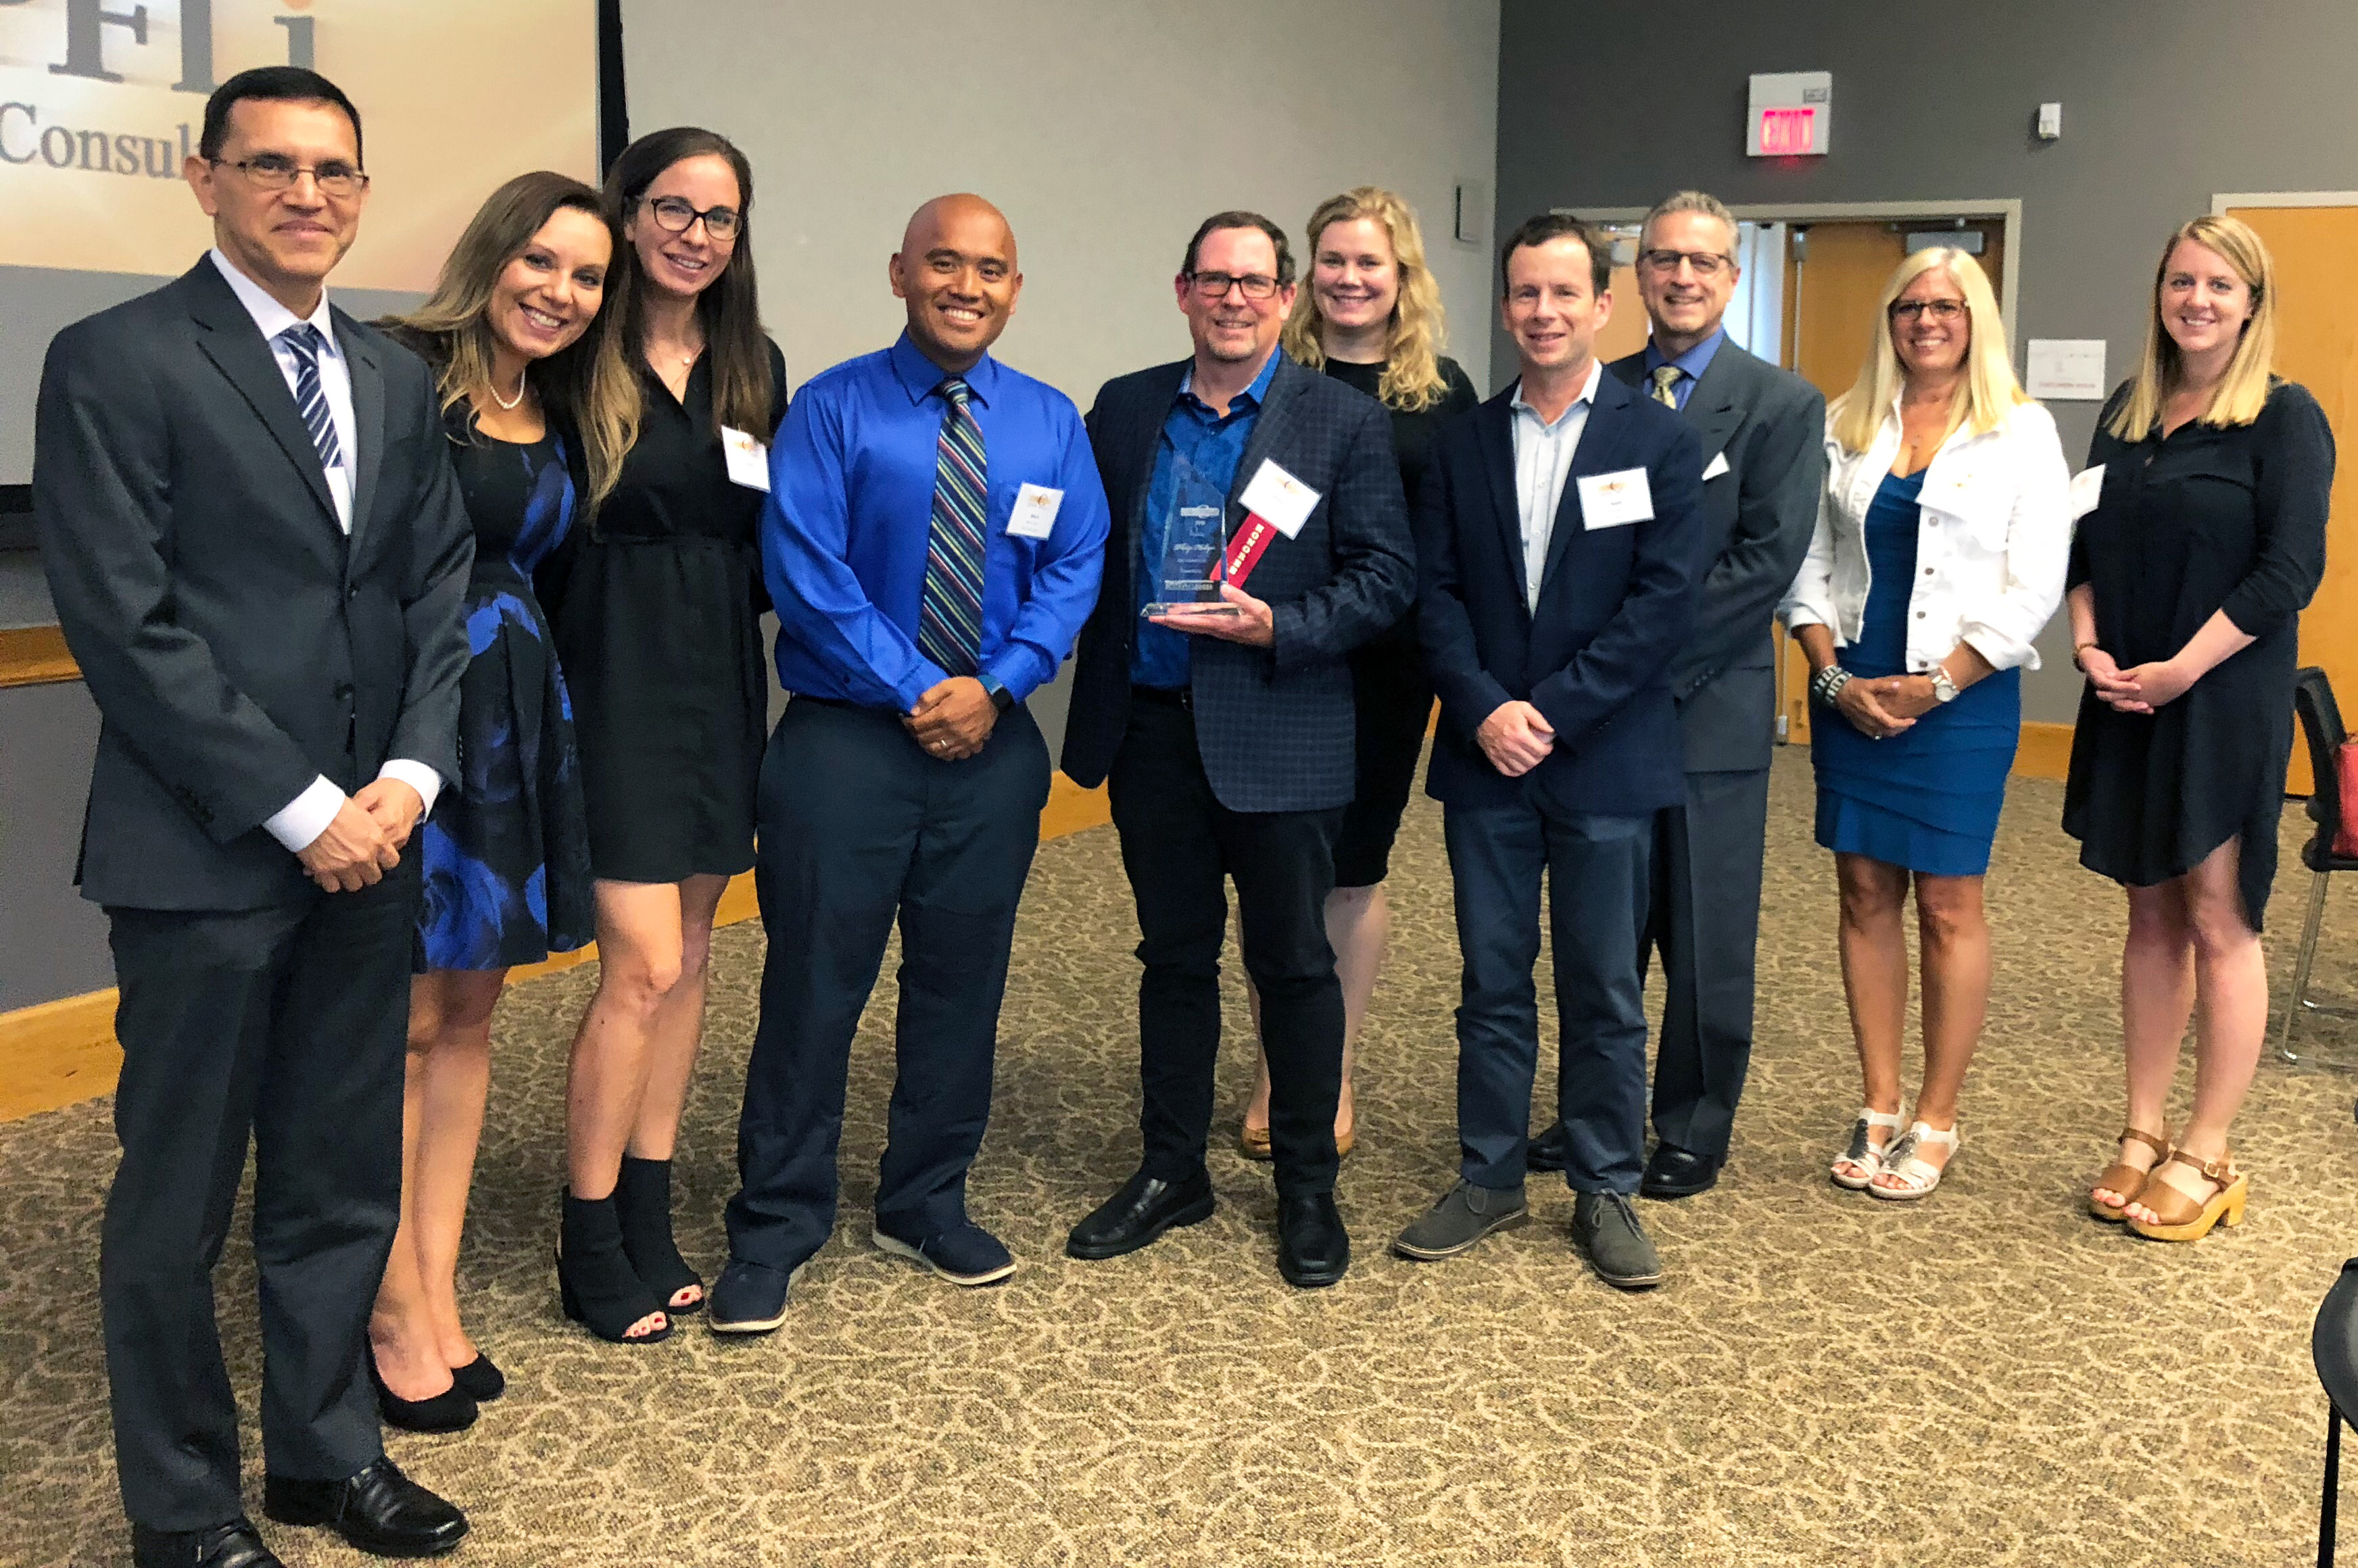 Phil Hollyer, co-founder and CEO of Bounteous, sports his C-Suite of the Year award surrounded by colleagues at the awards reception on Thursday, July 26 in Naperville, IL.